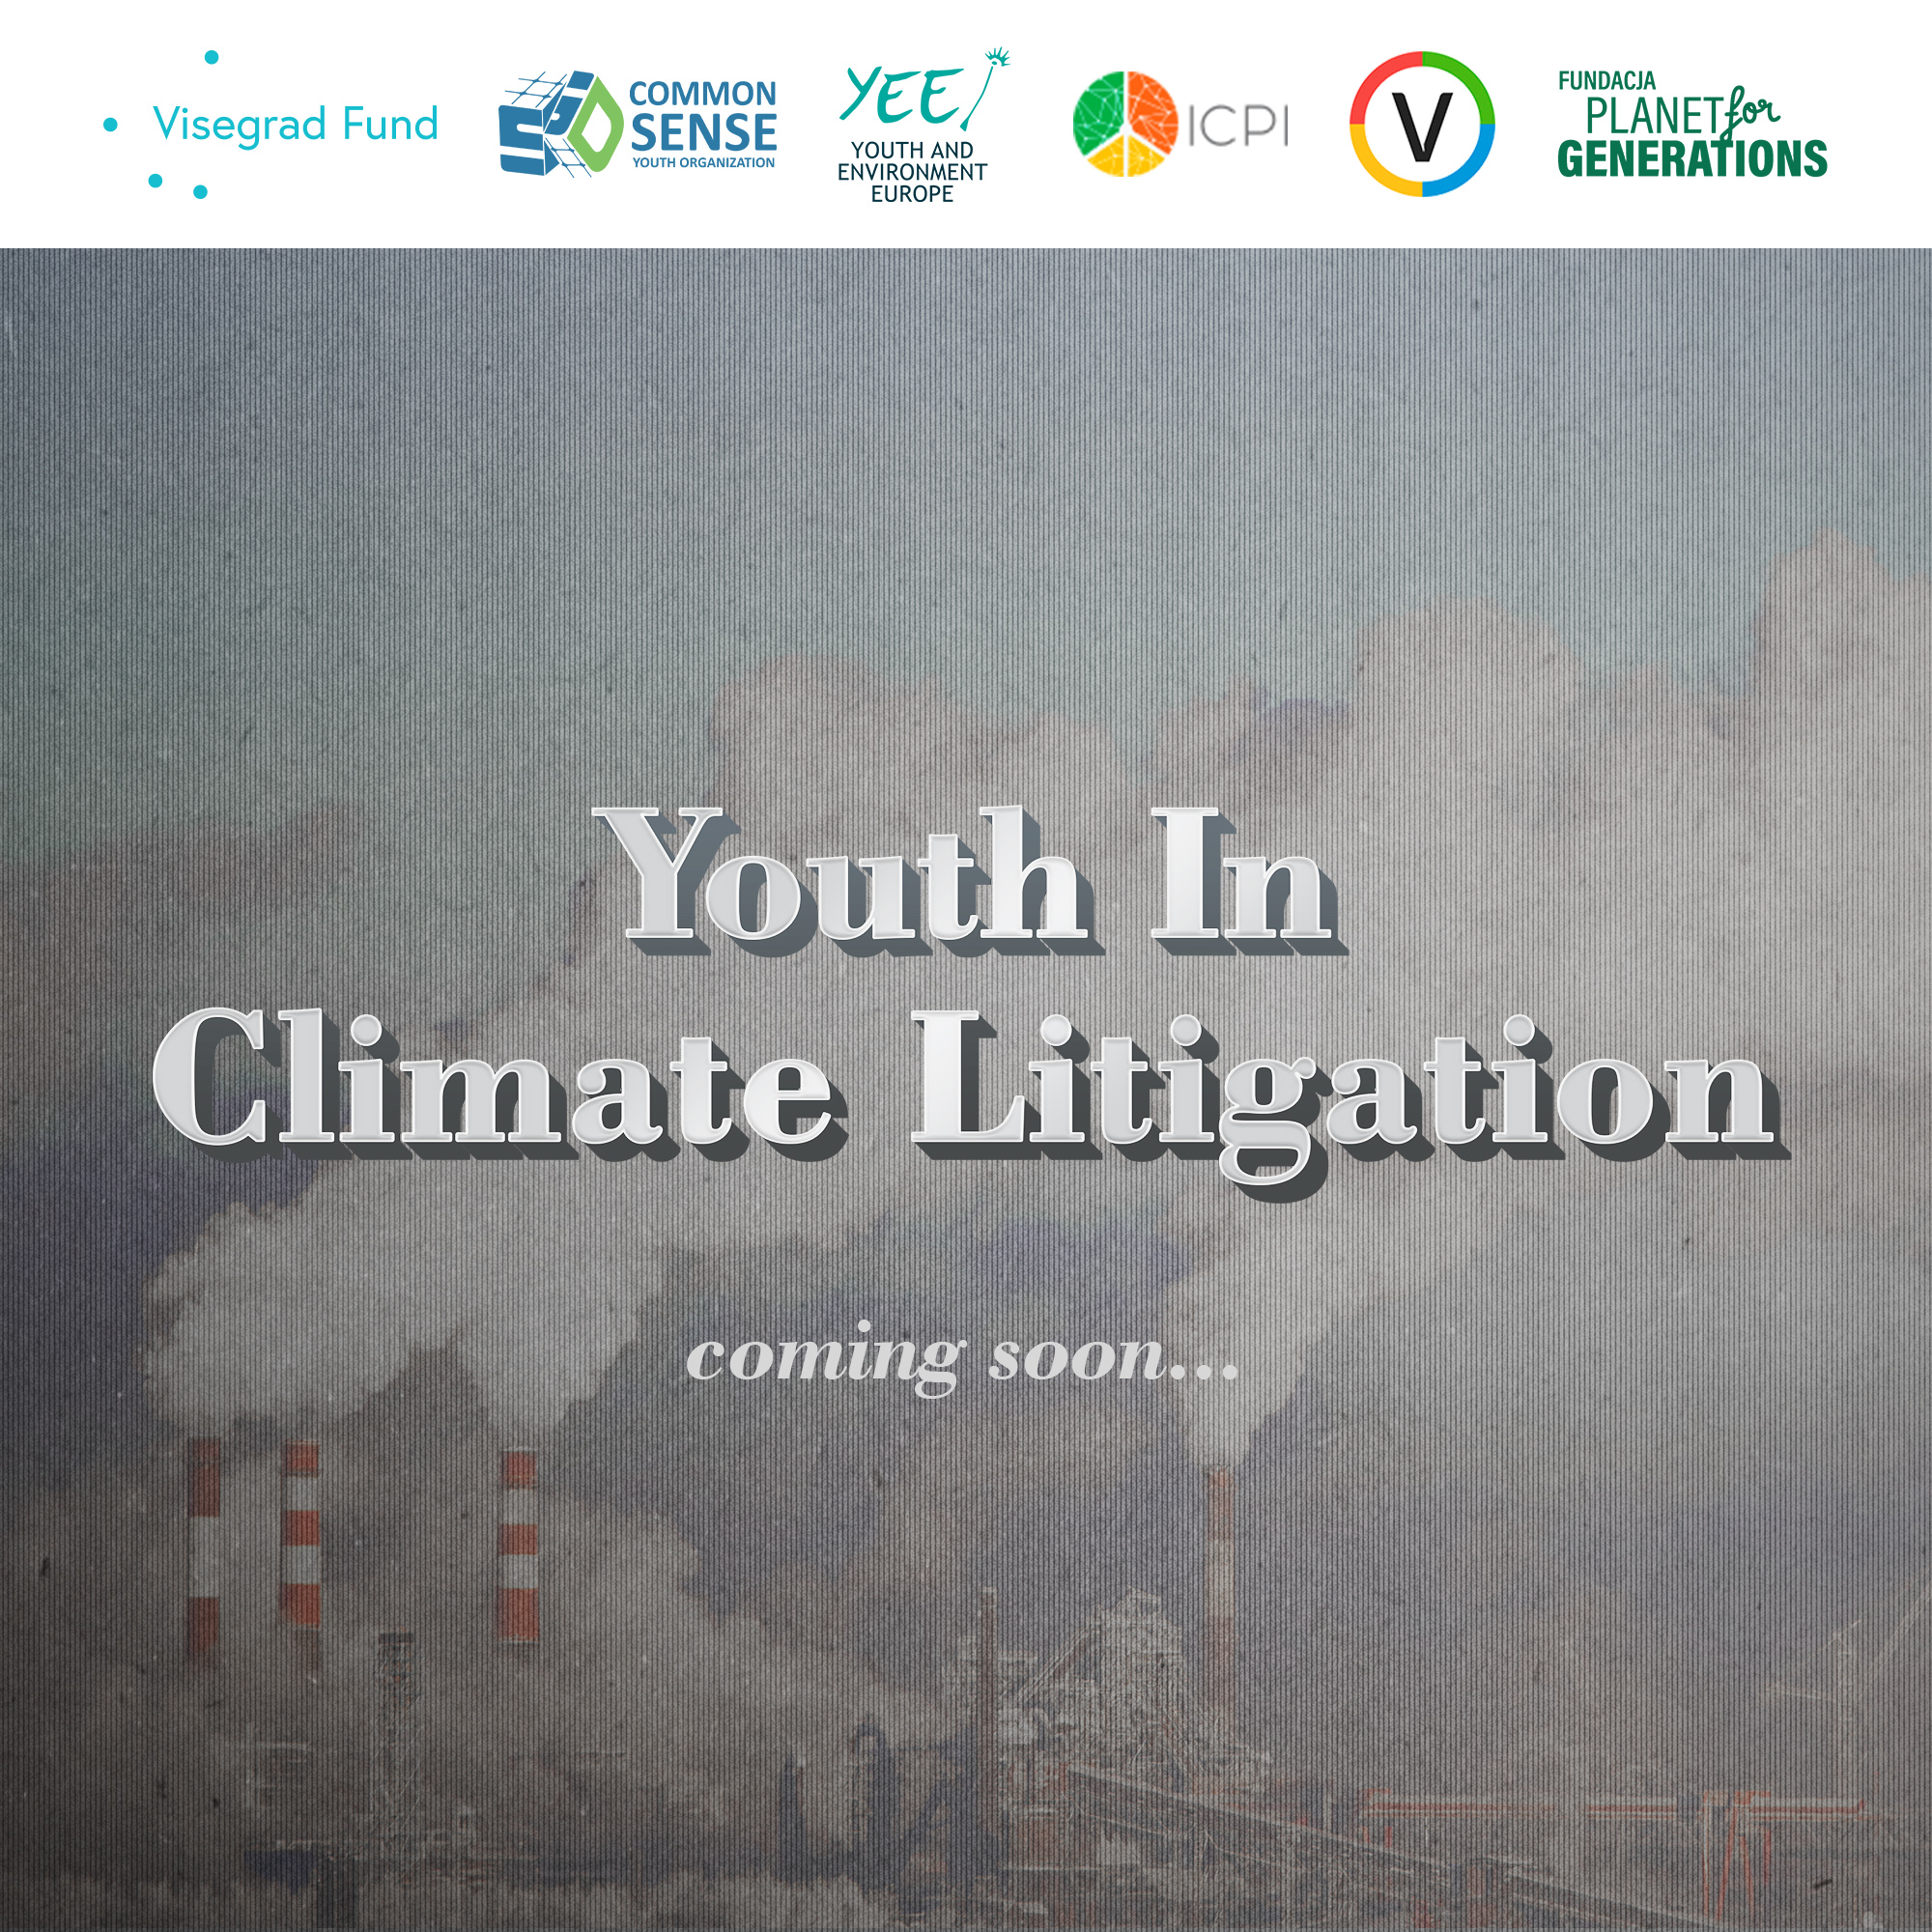 Youth in Climate litigation